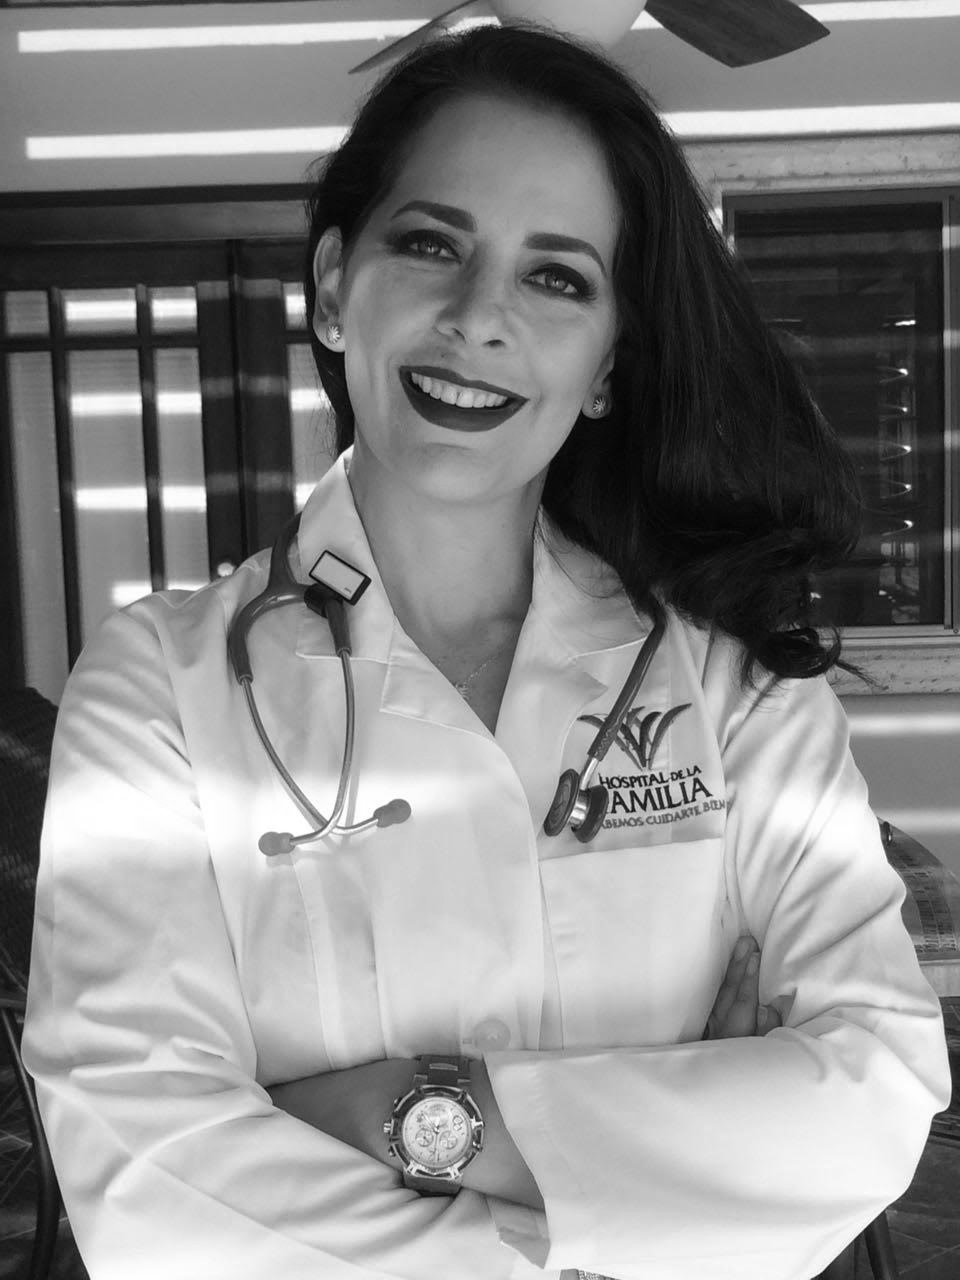 Gynecology surgeon Guadalupe machado